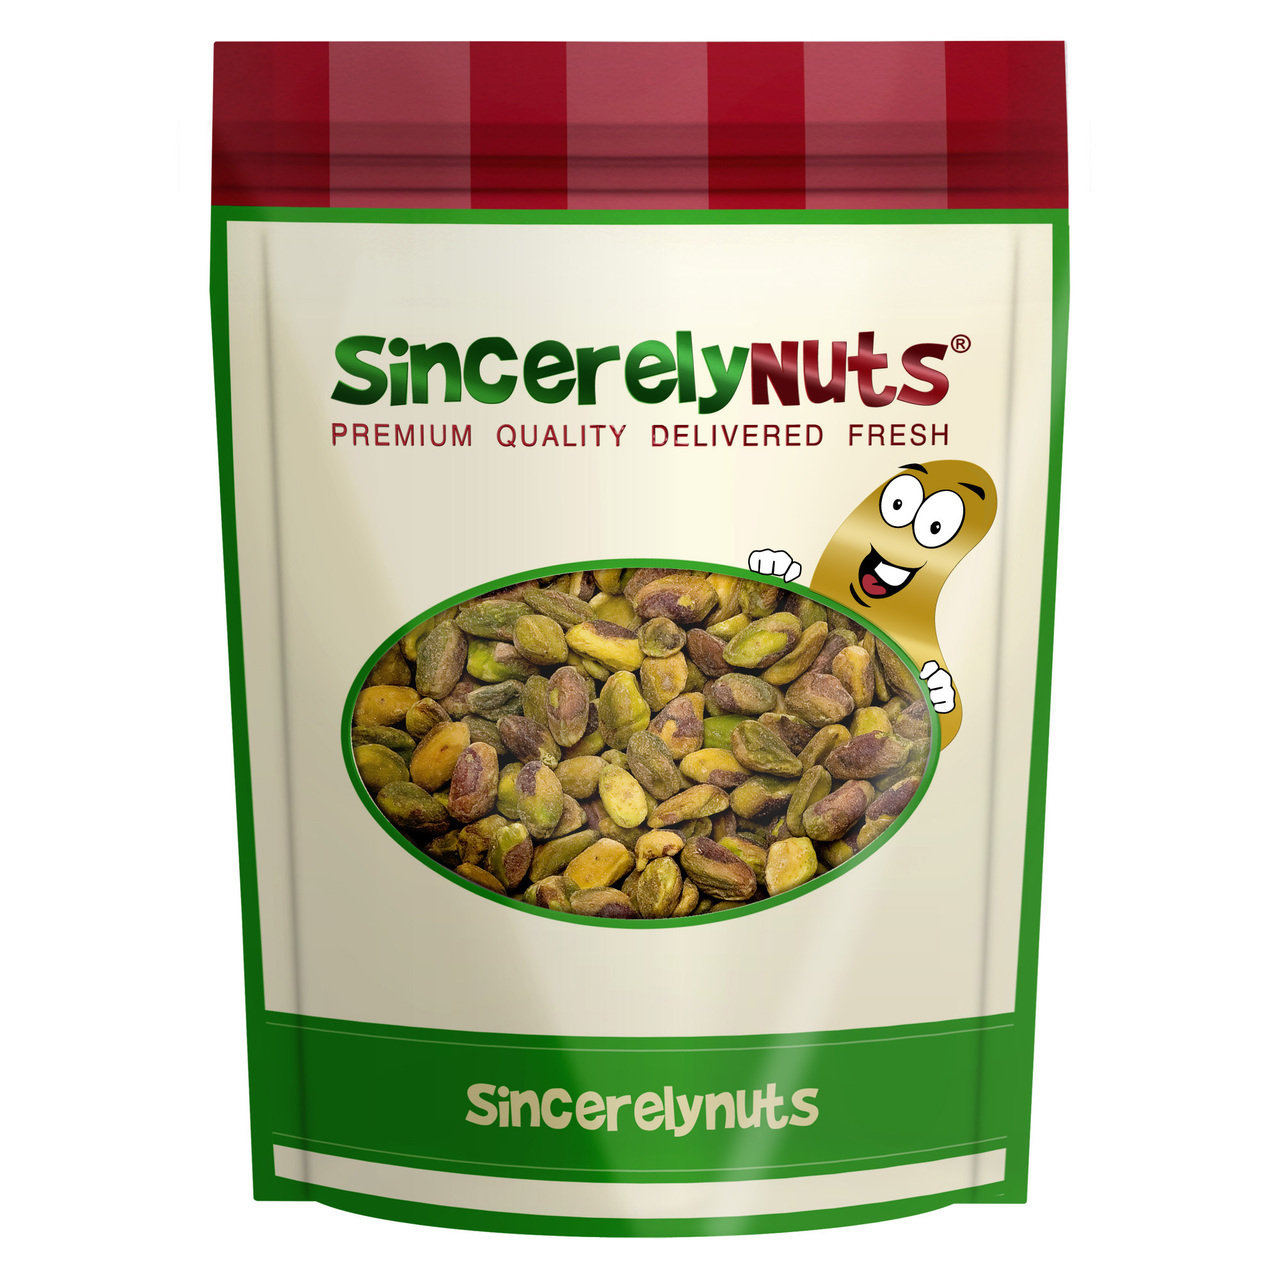 Sincerely Nuts Pistachio Kernels Roasted Salted, 1 LB Bag